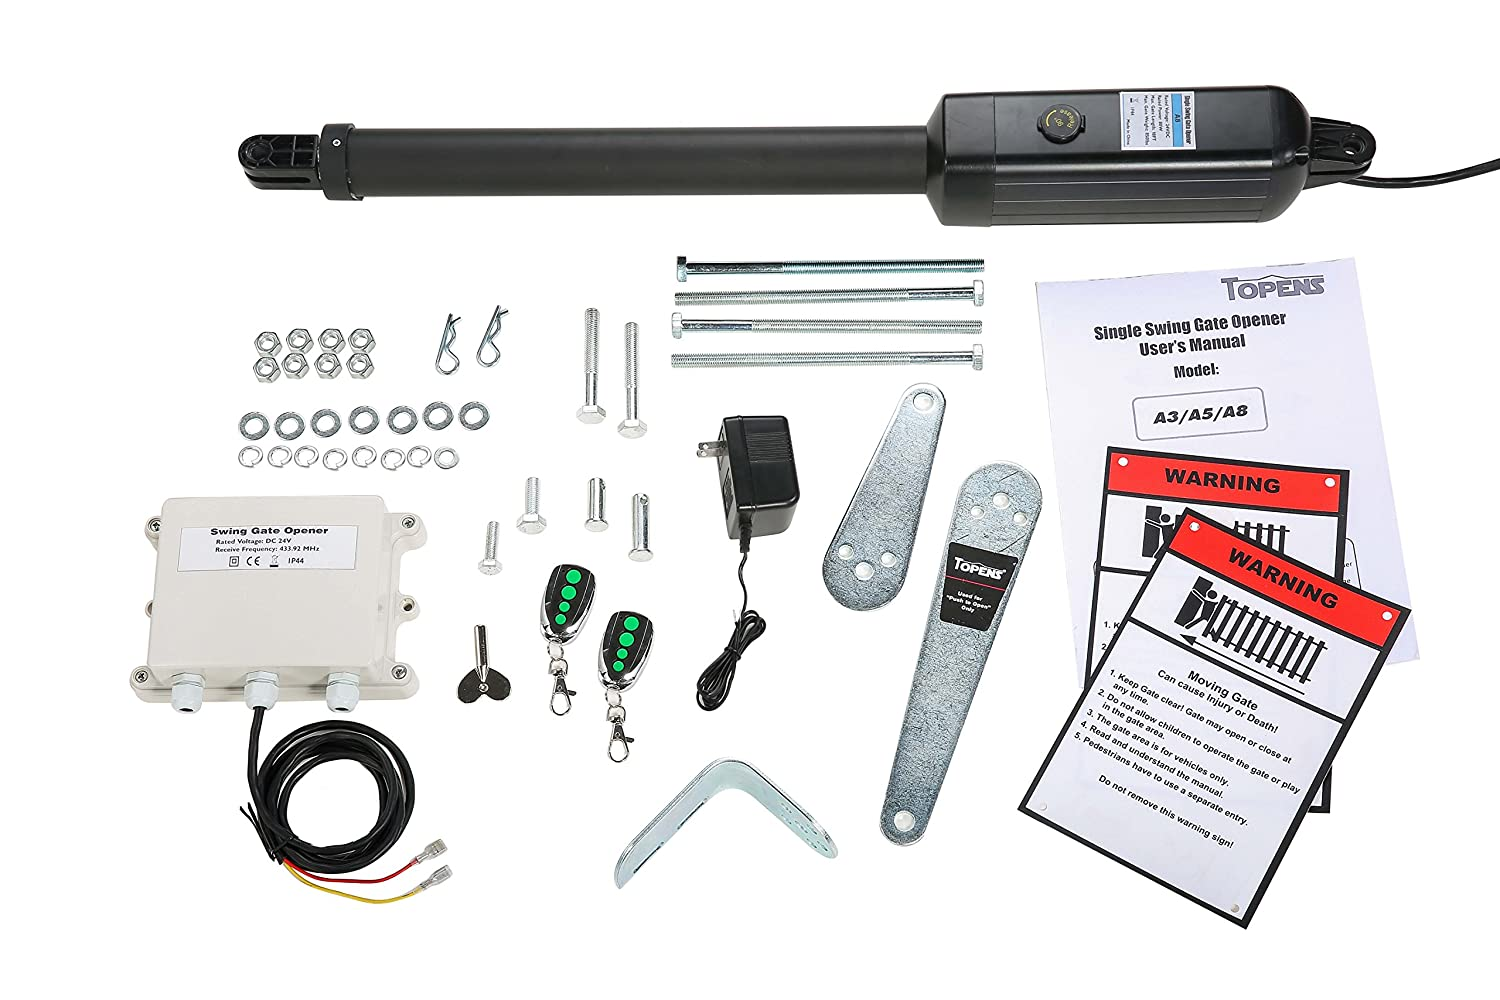 Topens A8 Automatic Gate Opener Kit Heavy Duty Single Gate Operator For Single Swing Gates Up To 18 Feet Or 850 Pounds Gate Motor